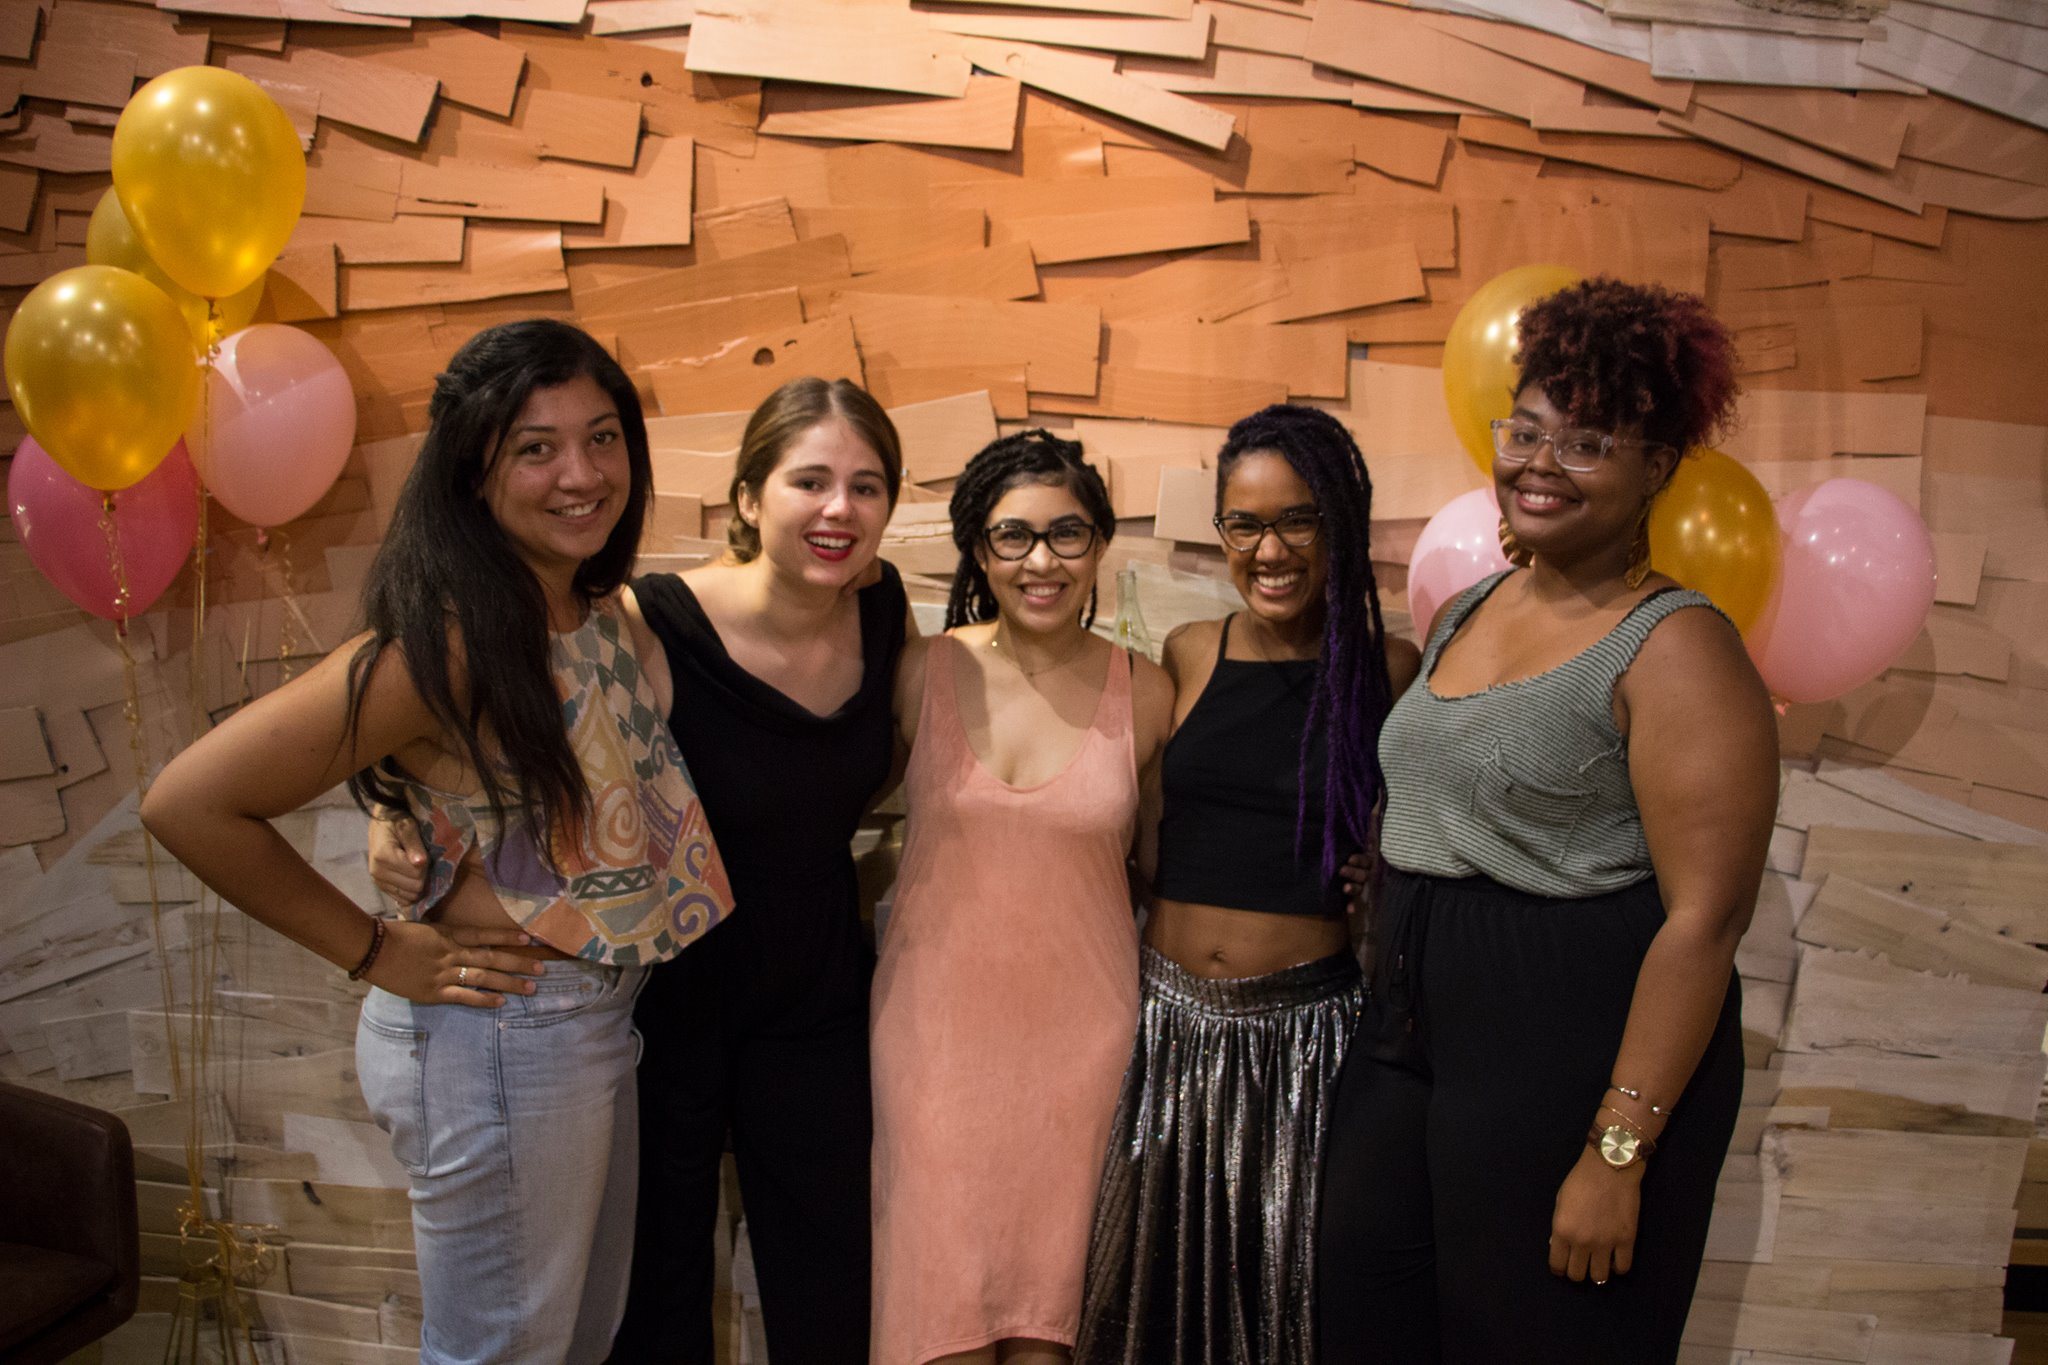 The current #bossbabesATX team includes (from left to right) Jasmine Brooks, Leslie, Jane, Ashlee, and Lauren Murray. Photo by Tess Cagle